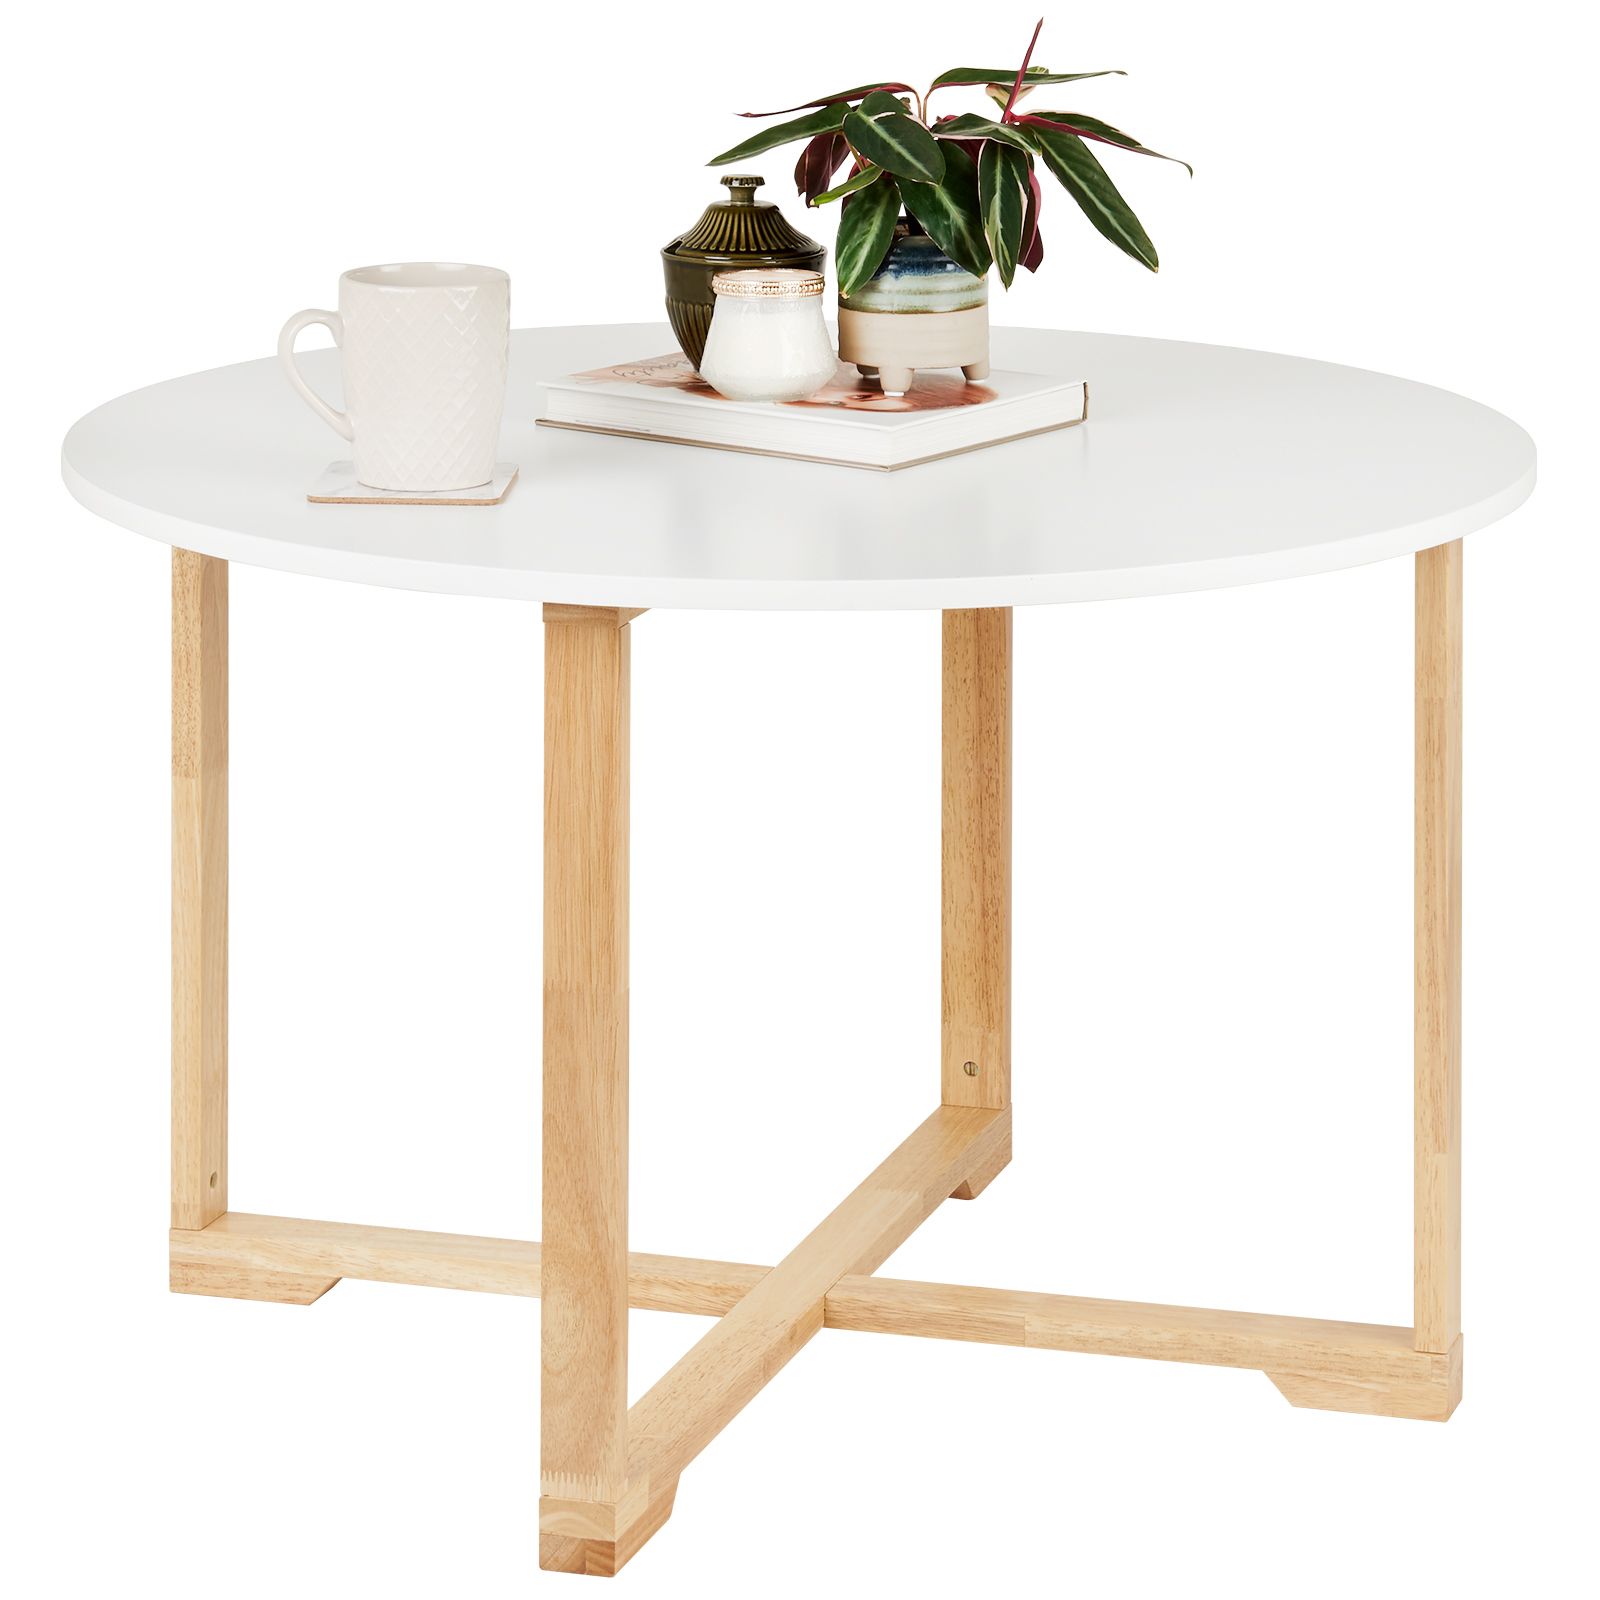 Picture of: Hartleys Large White Round Coffee Table Bamboo Modern Living Room Home Furniture 5051990767072 Ebay